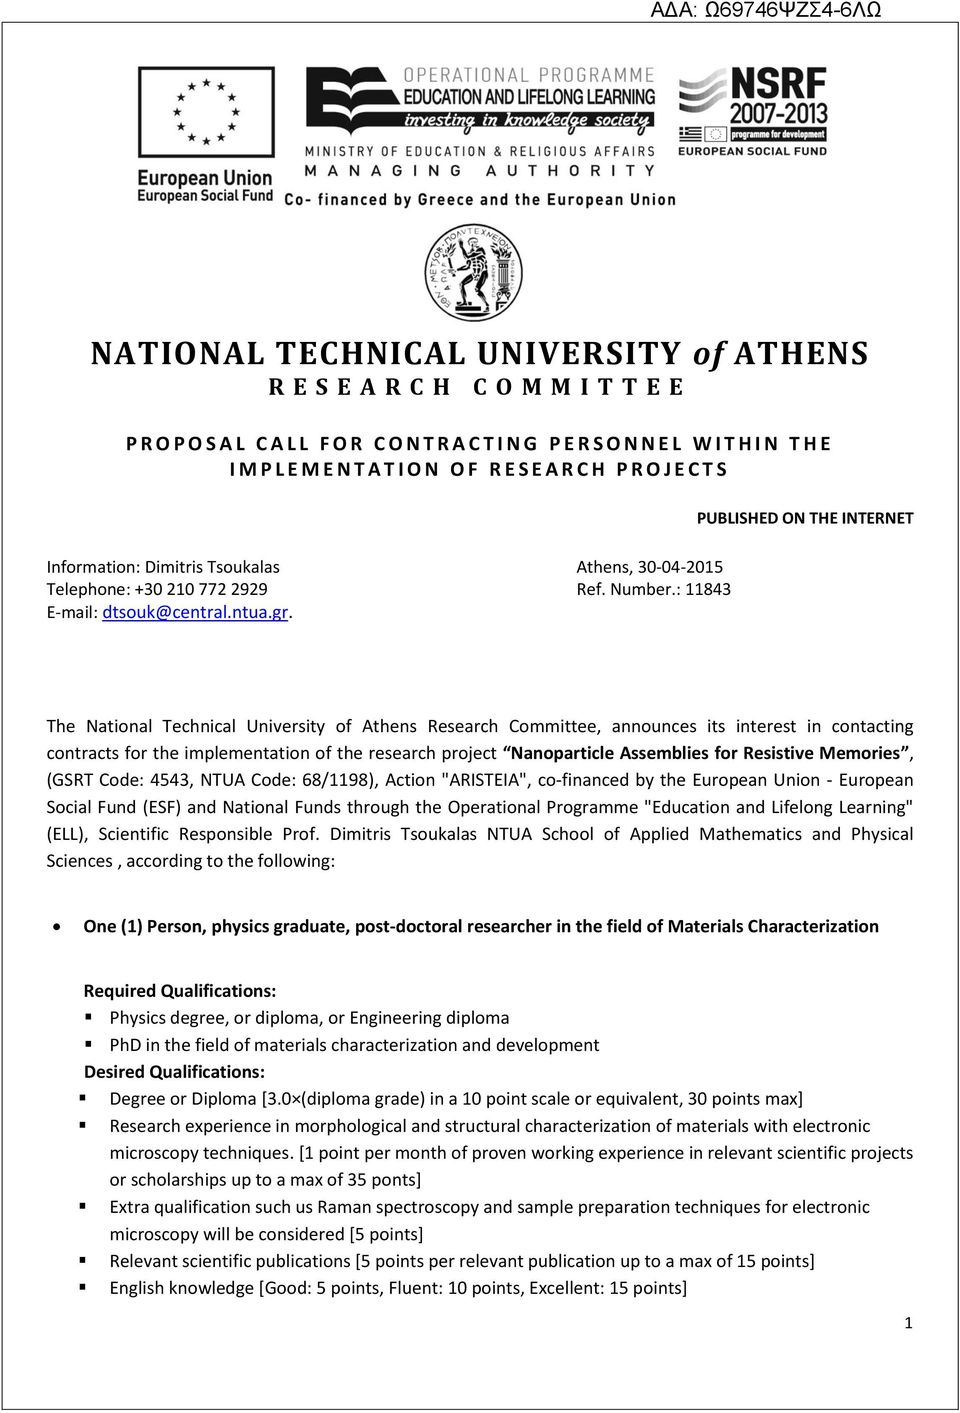 : 11843 The National Technical University of Athens Research Committee, announces its interest in contacting contracts for the implementation of the research project Nanoparticle Assemblies for